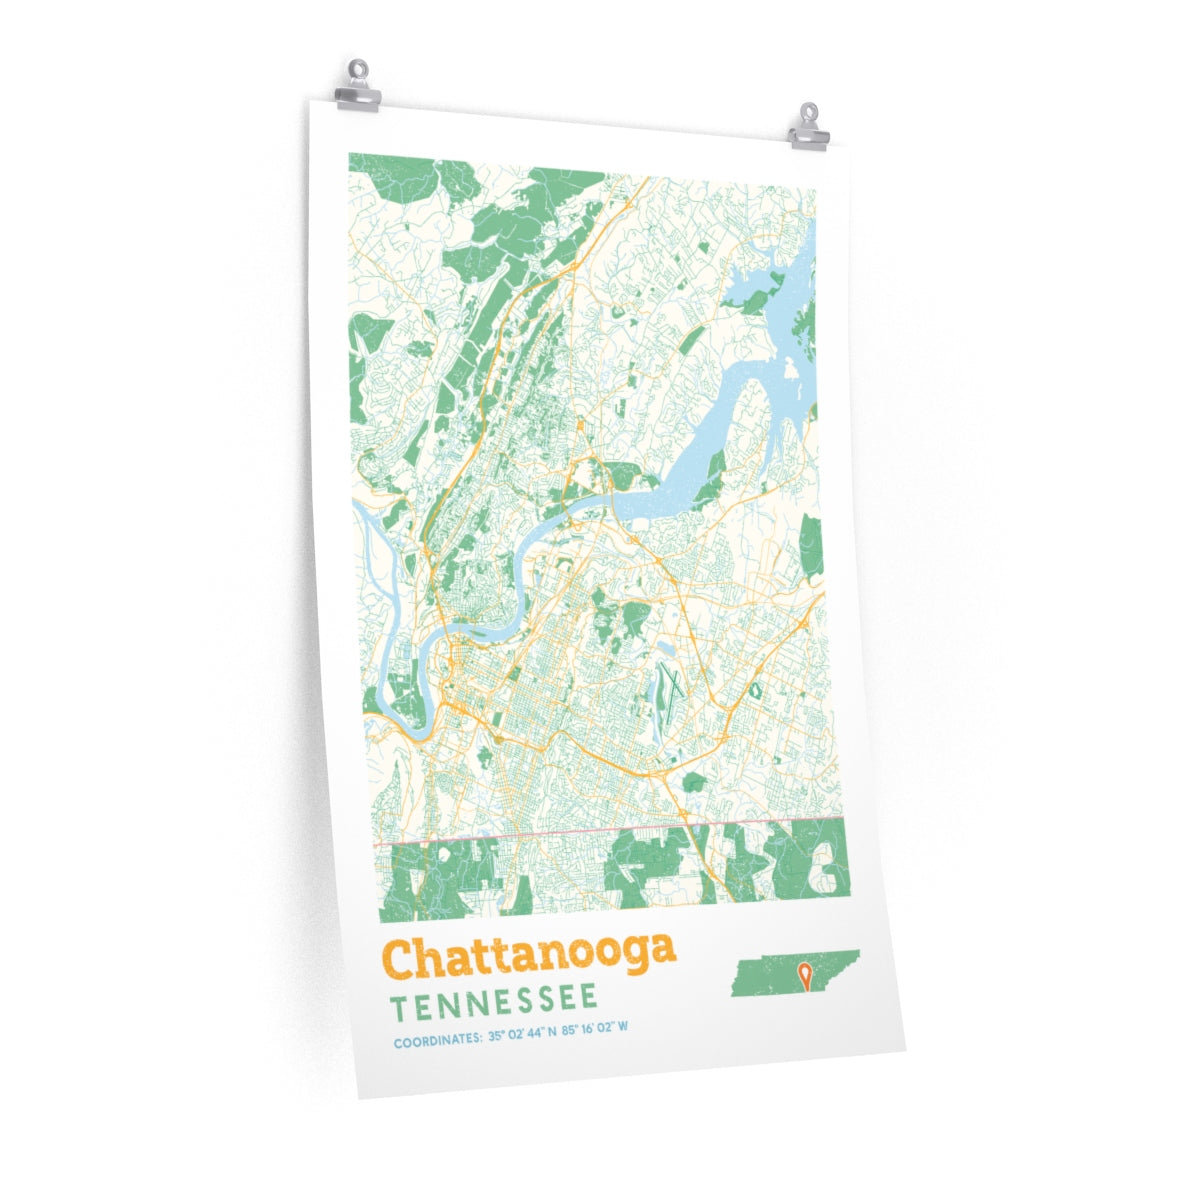 Chattanooga Tennessee City Street Map Poster - Allegiant Goods Co. on